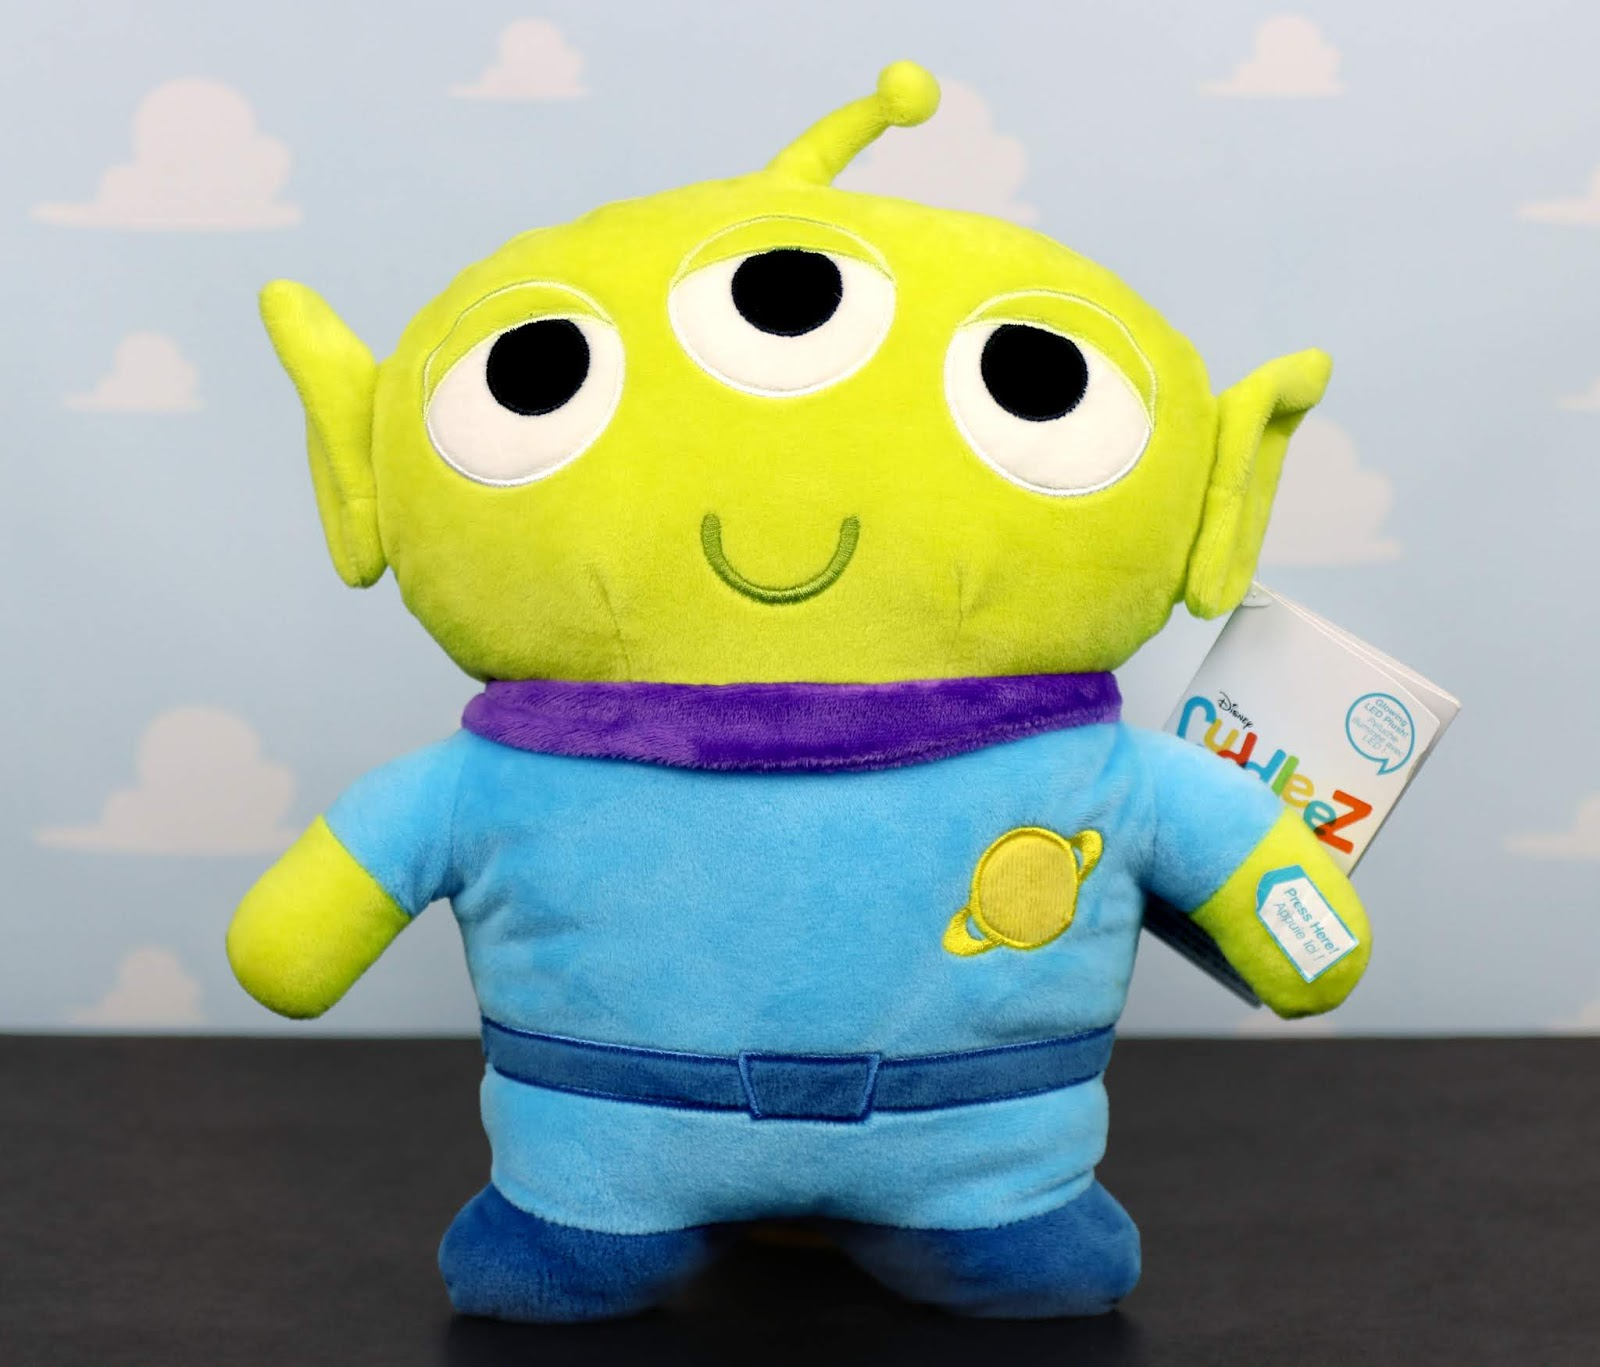 disney store toy story light up alien plush